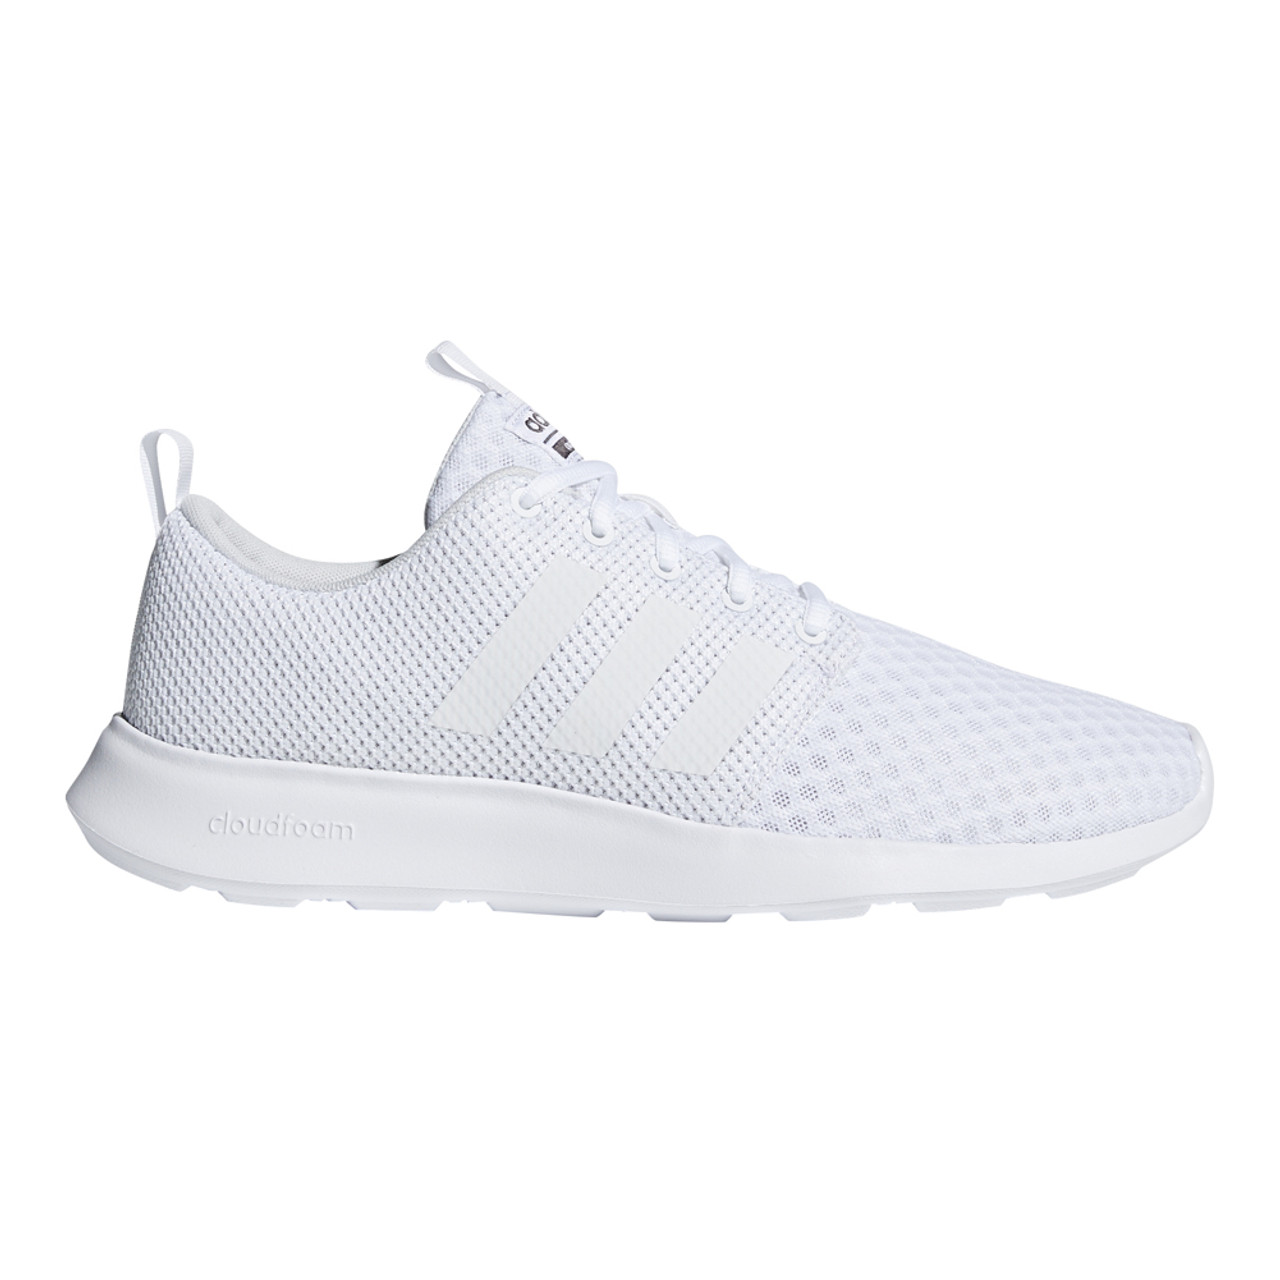 09d2f3914 Adidas Men s Cloudfoam Swift Racer Sneaker White Carbon - Shop now    Shoolu.com